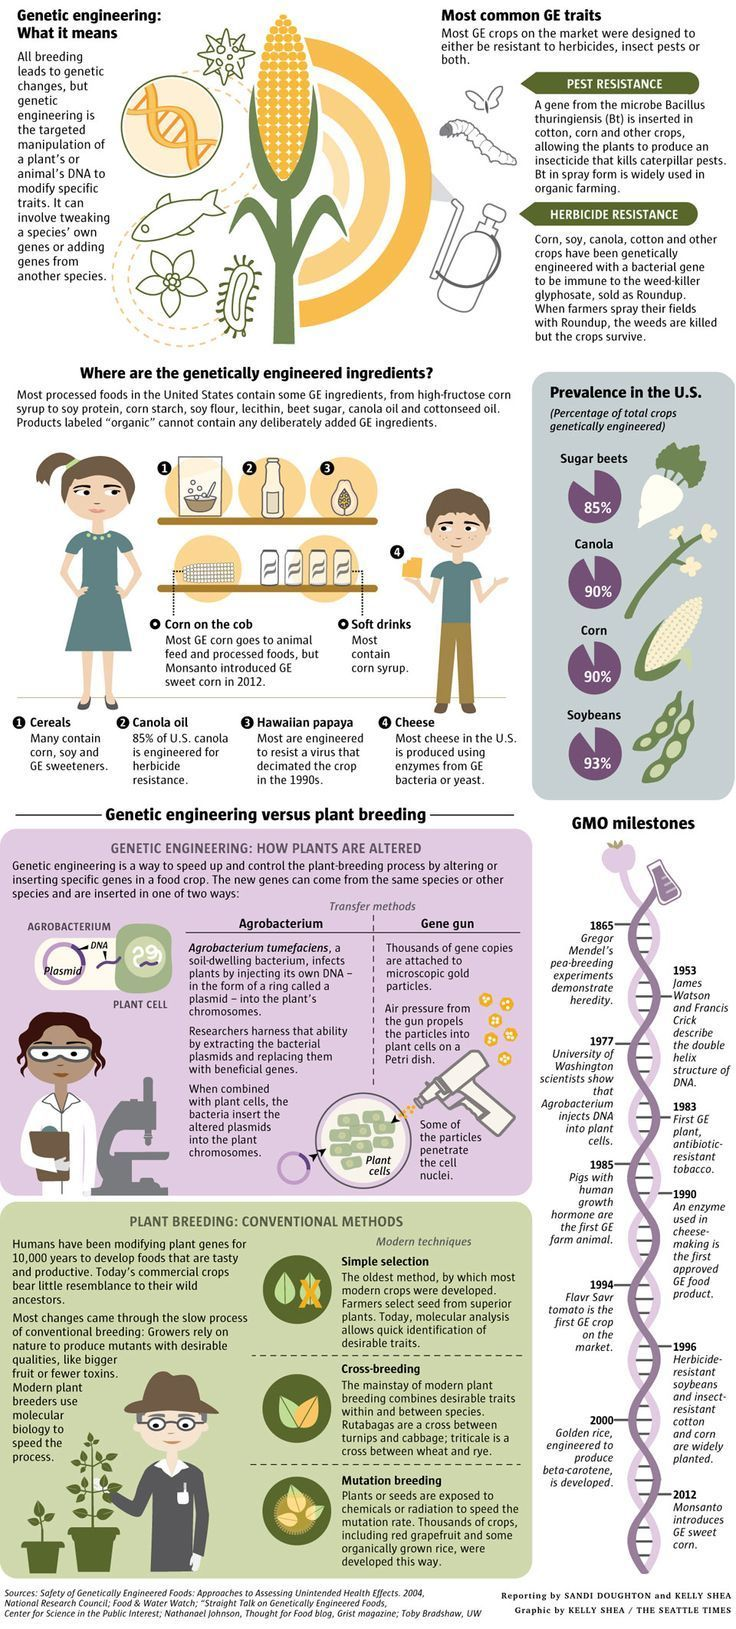 ABCs of GMOs | Local News | The Seattle Times